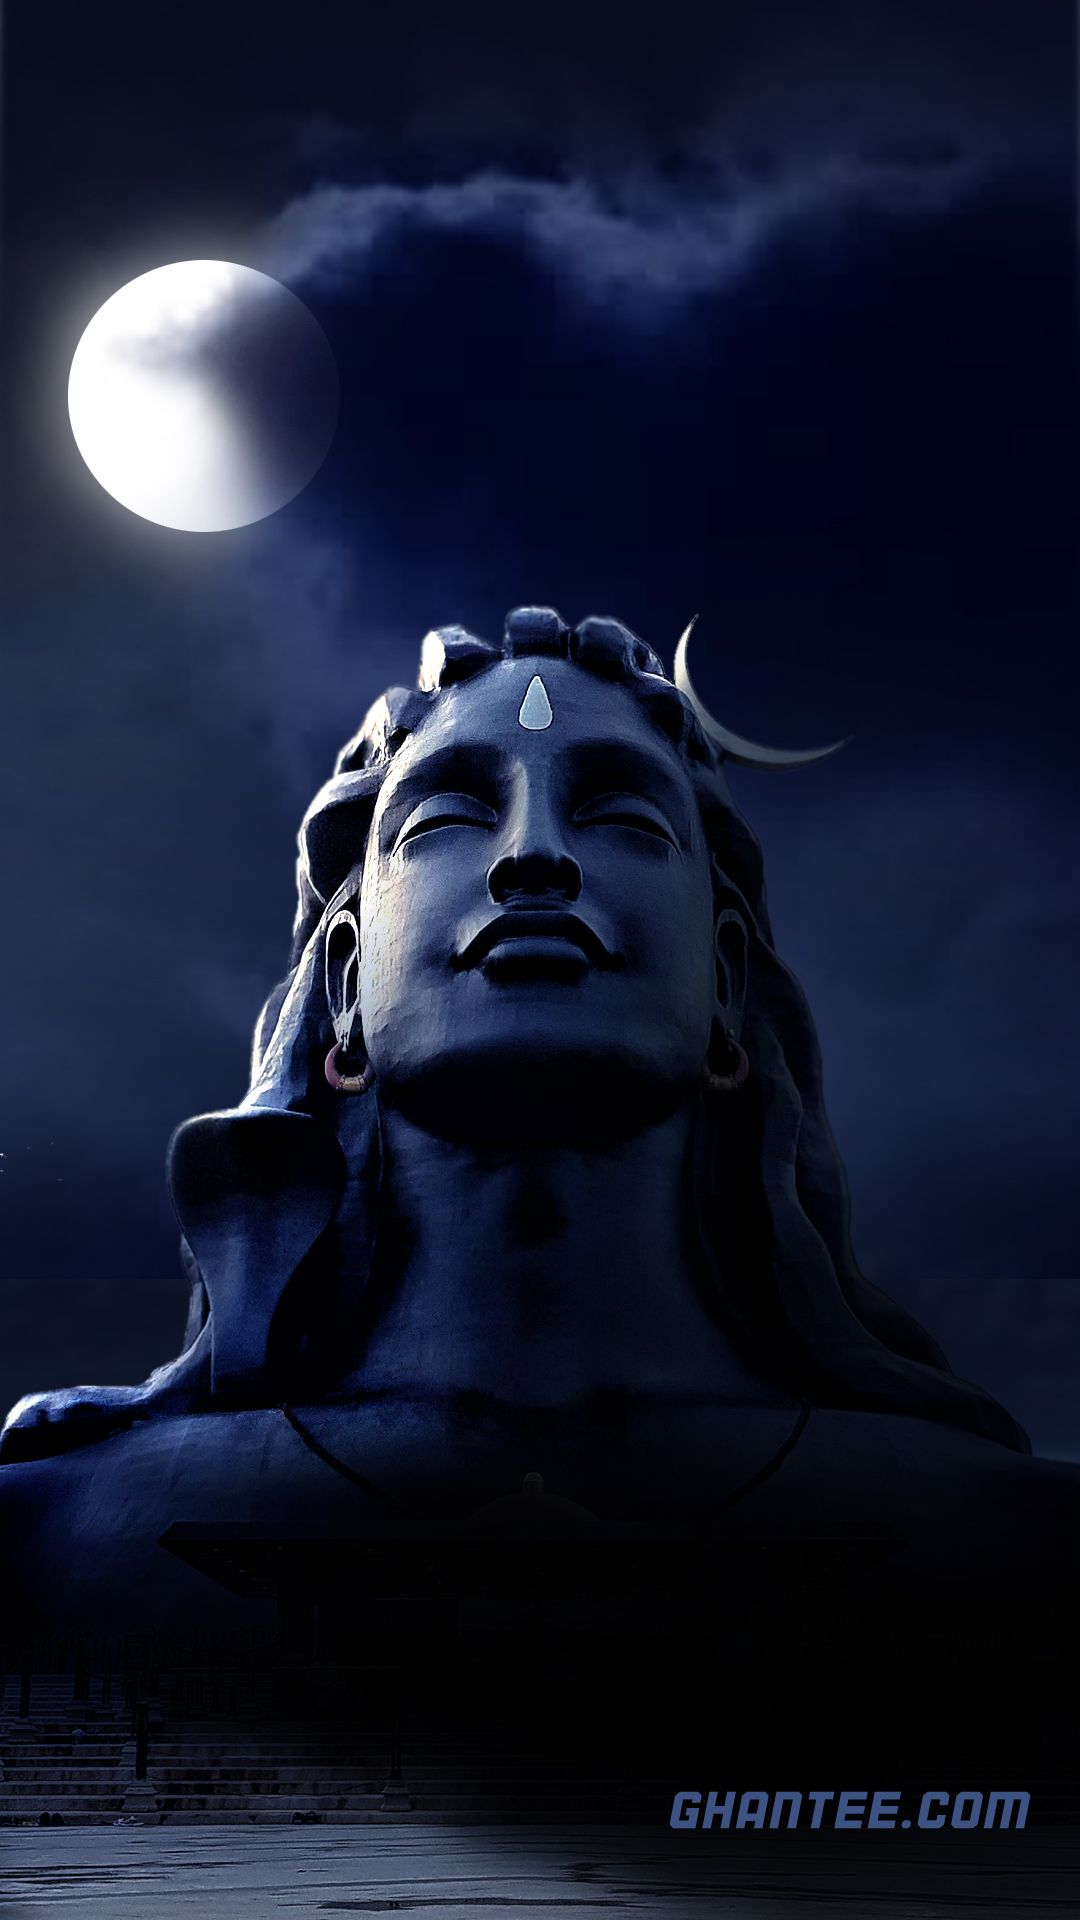 24 Best Lord Shiva Wallpapers For Mobile Devices Shiva Wallpaper Photos Of Lord Shiva Lord Krishna Hd Wallpaper